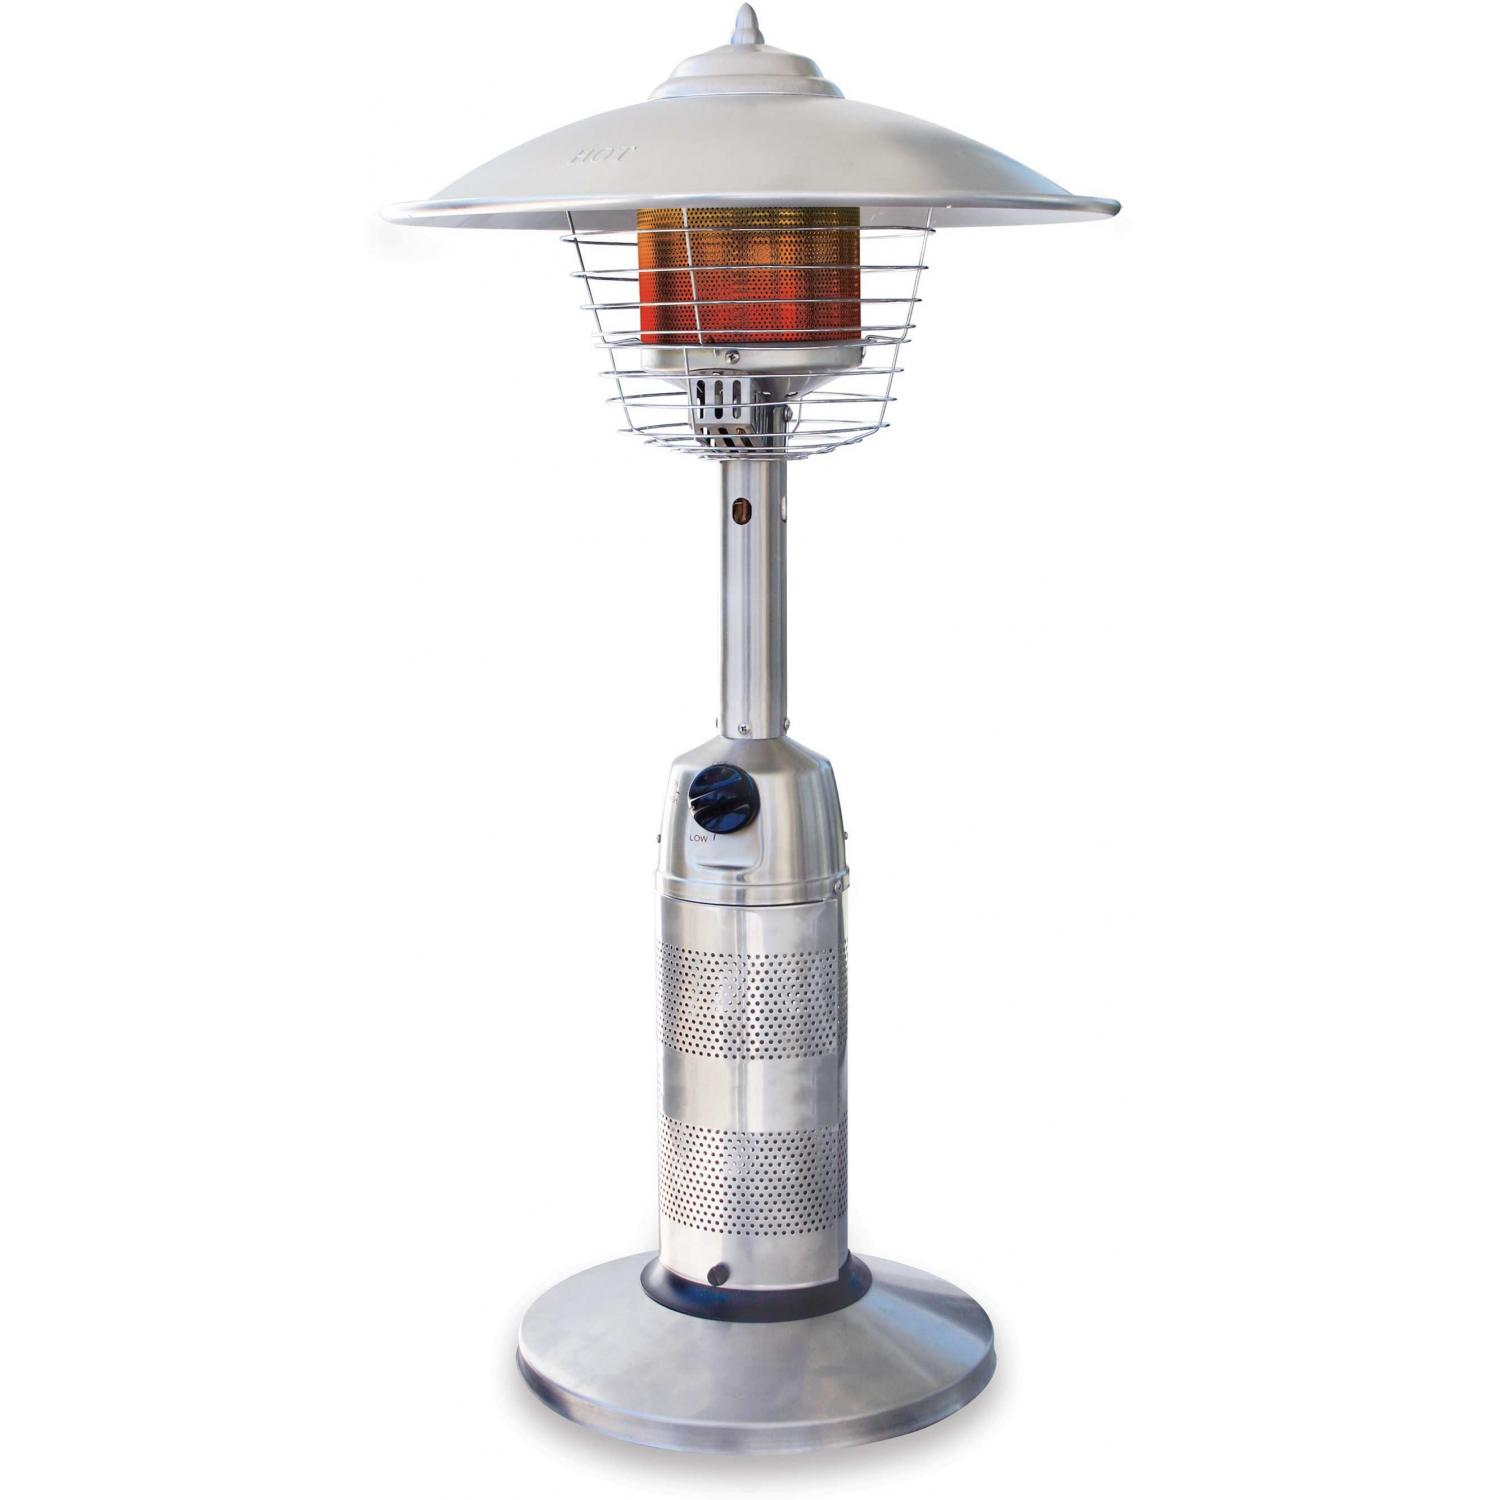 Endless Summer Stainless Steel Table Top Propane Patio Heater